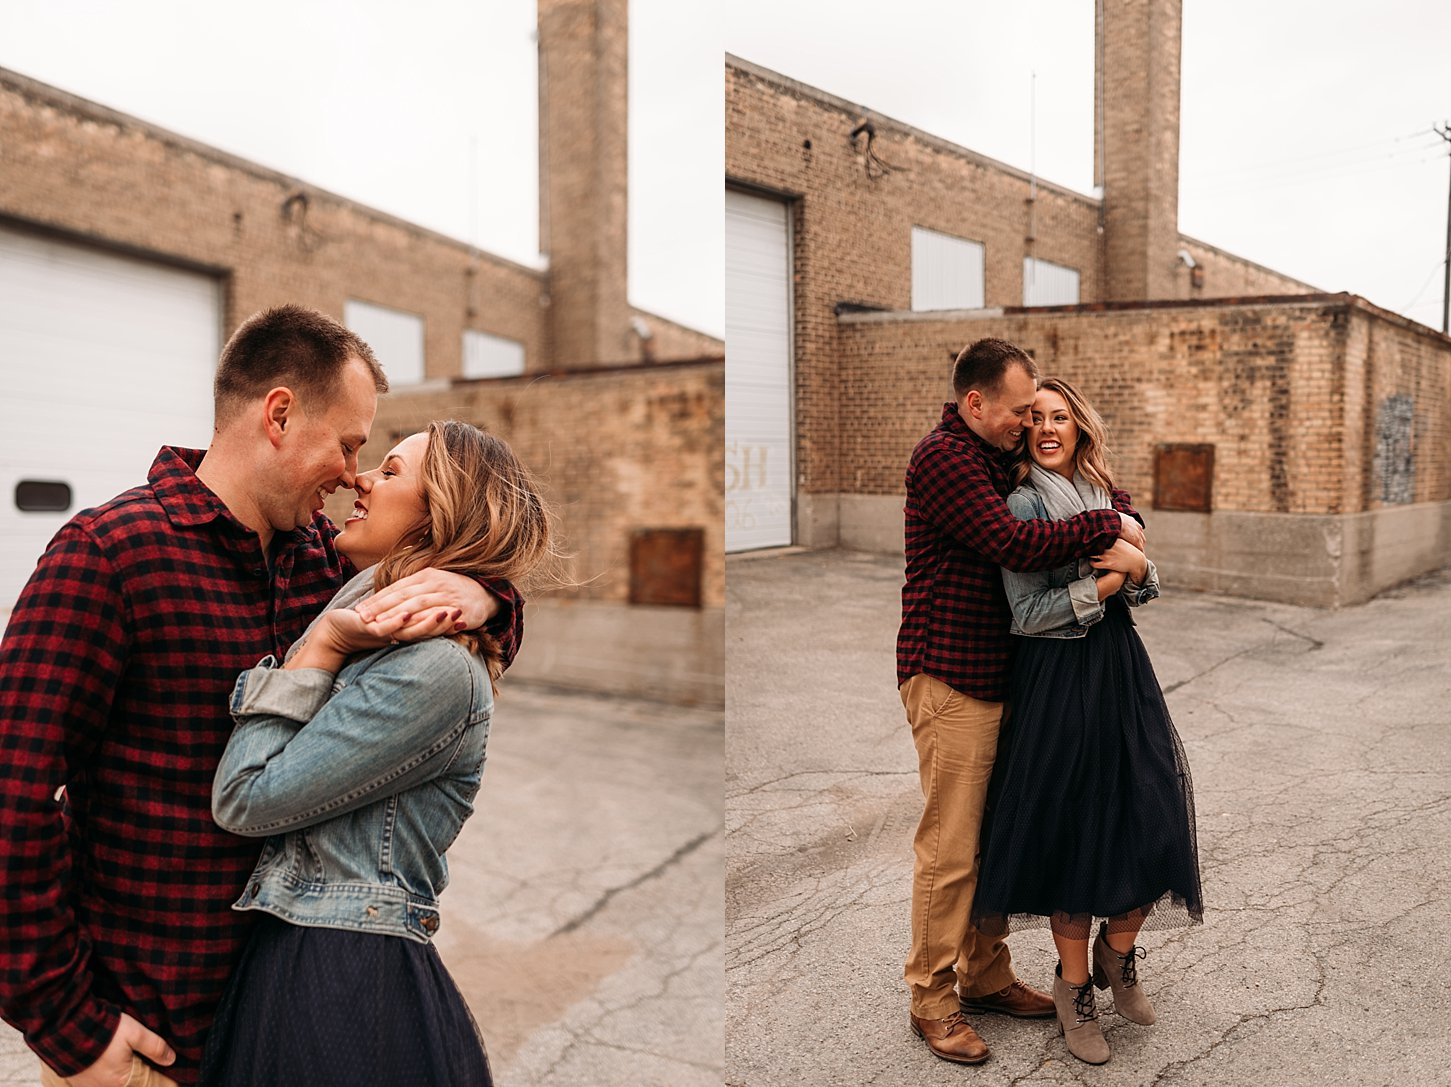 Engagement Session De Pere Wisconsin, Naomi & Cole - Carlee Secor Photography Green Bay Wisconsin Photographer Wedding Photographer